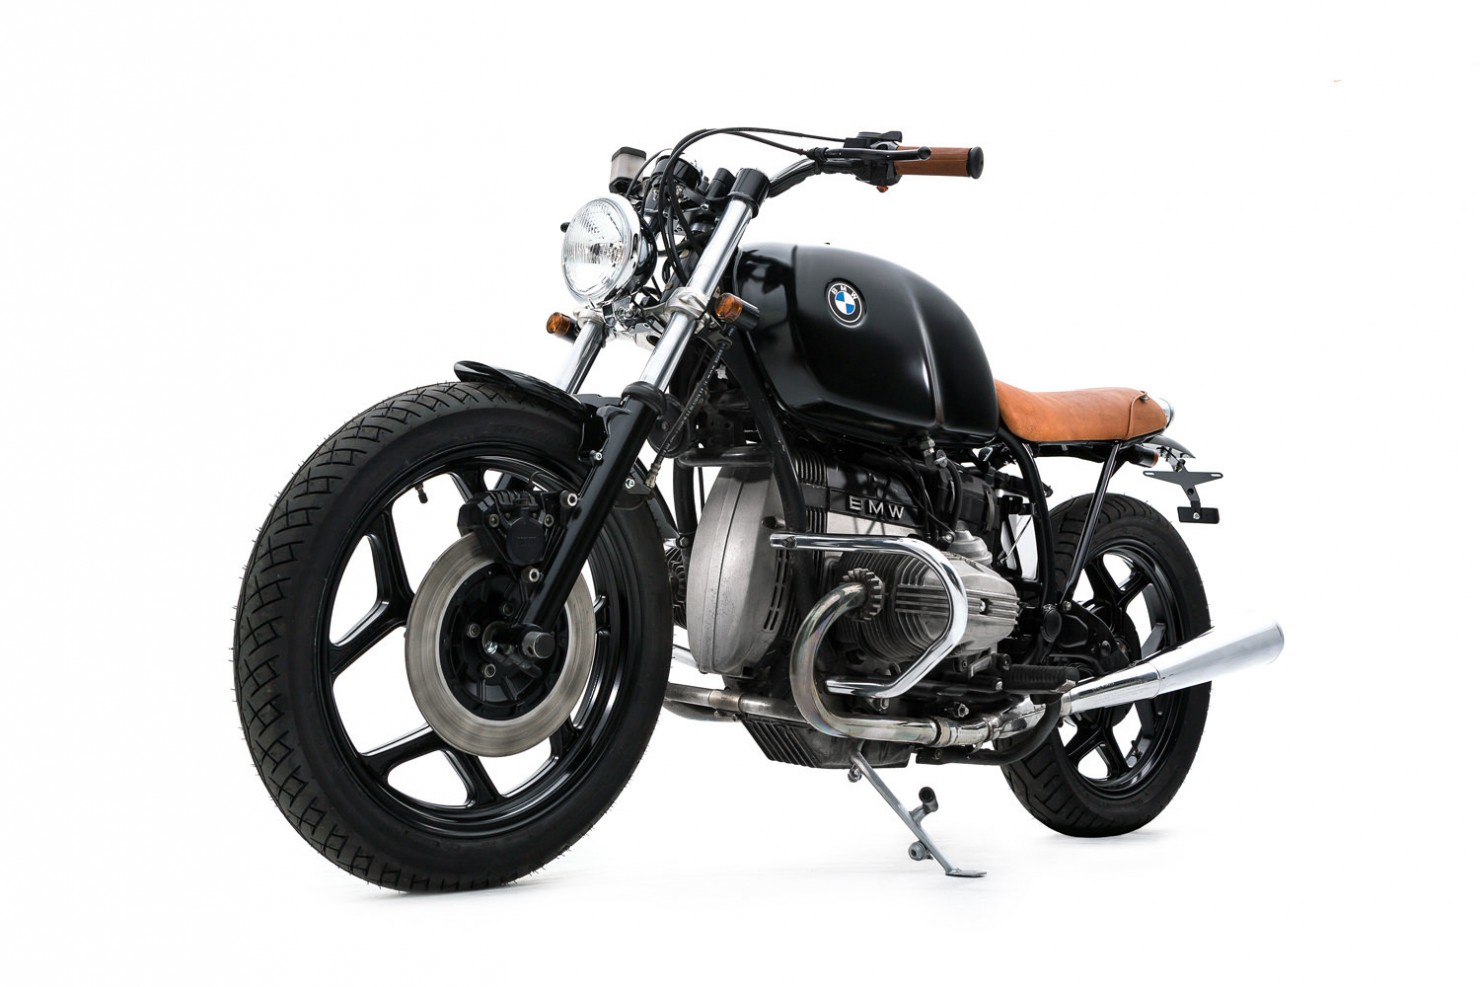 BMW-R65-Motorcycle-4